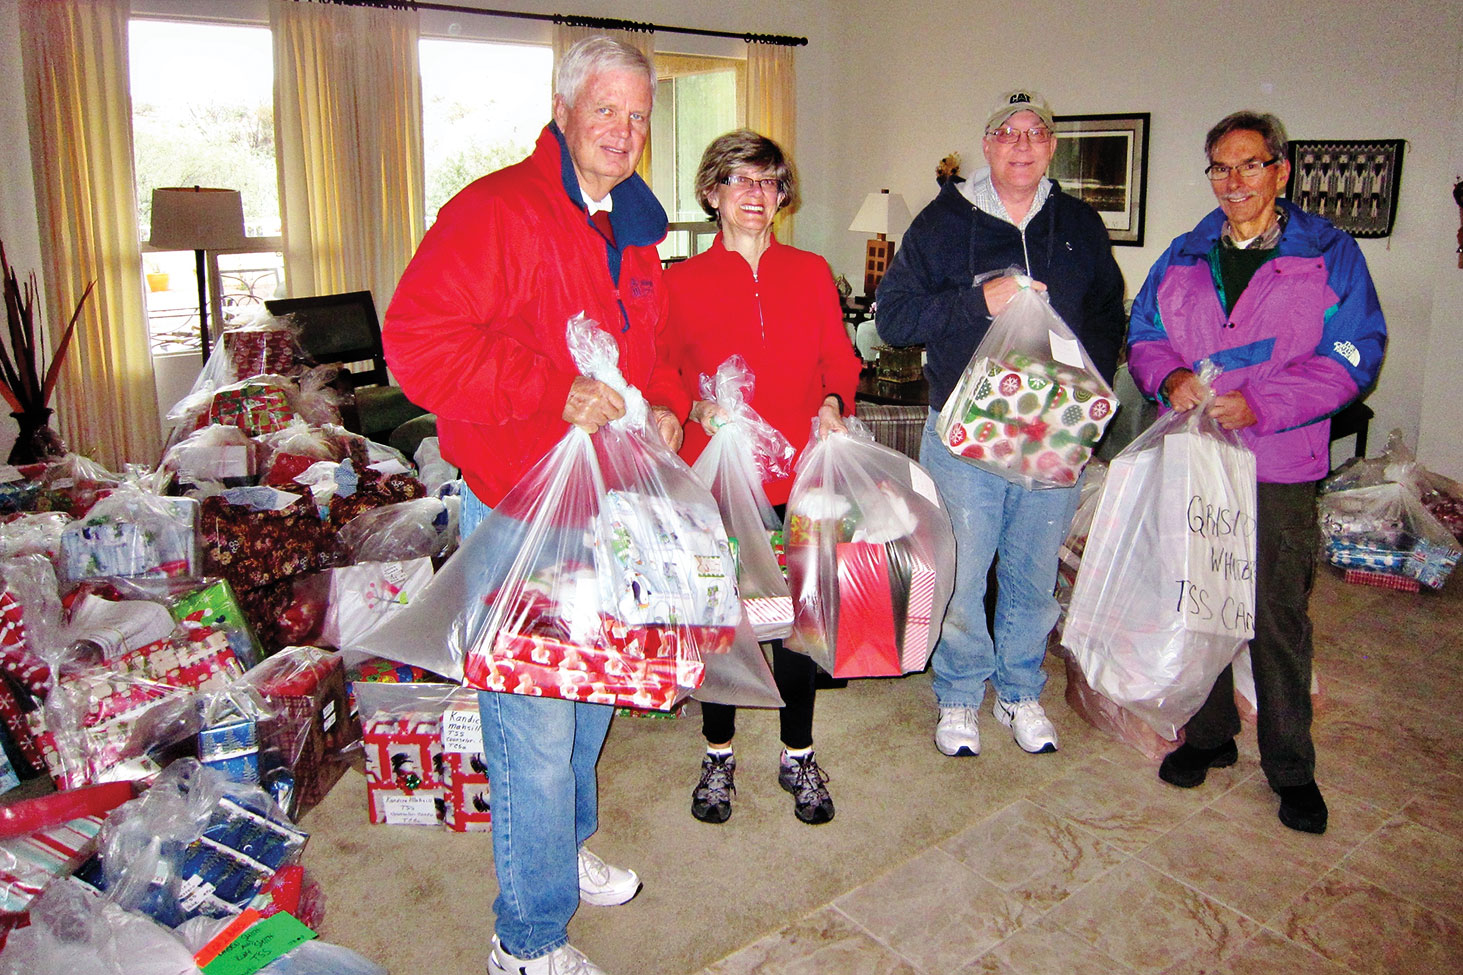 Joe Murdock, Ellen Perkins, David Wisniewski and Sam Carmen are surrounded by gifts for Apache Indian children to be delivered to the San Carlos Reservation.